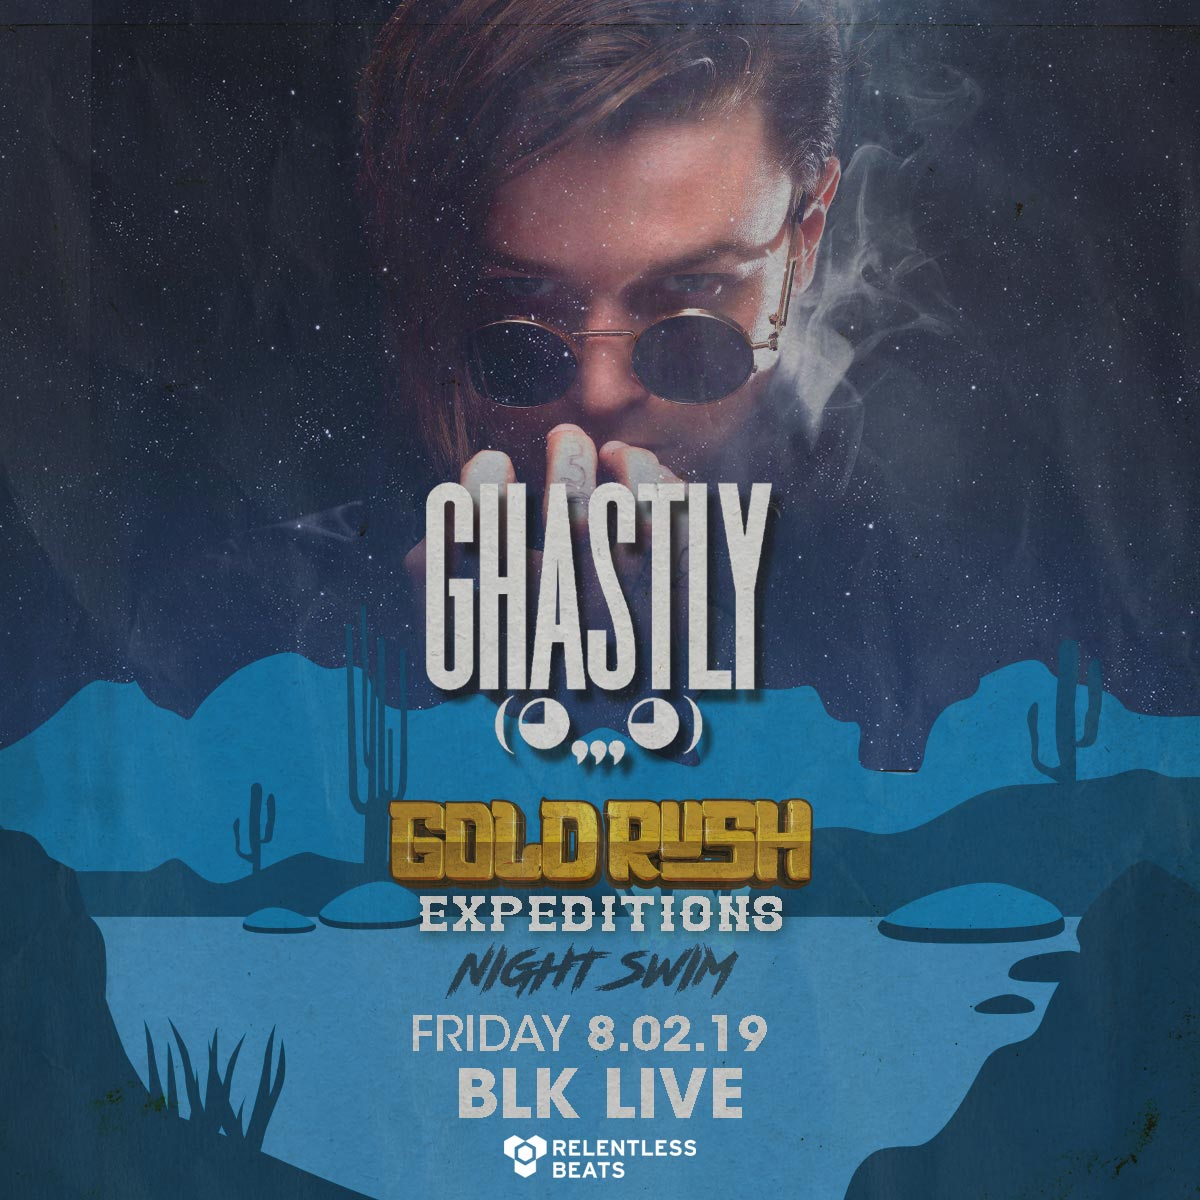 Flyer for Ghastly - Goldrush Expeditions Night Swim